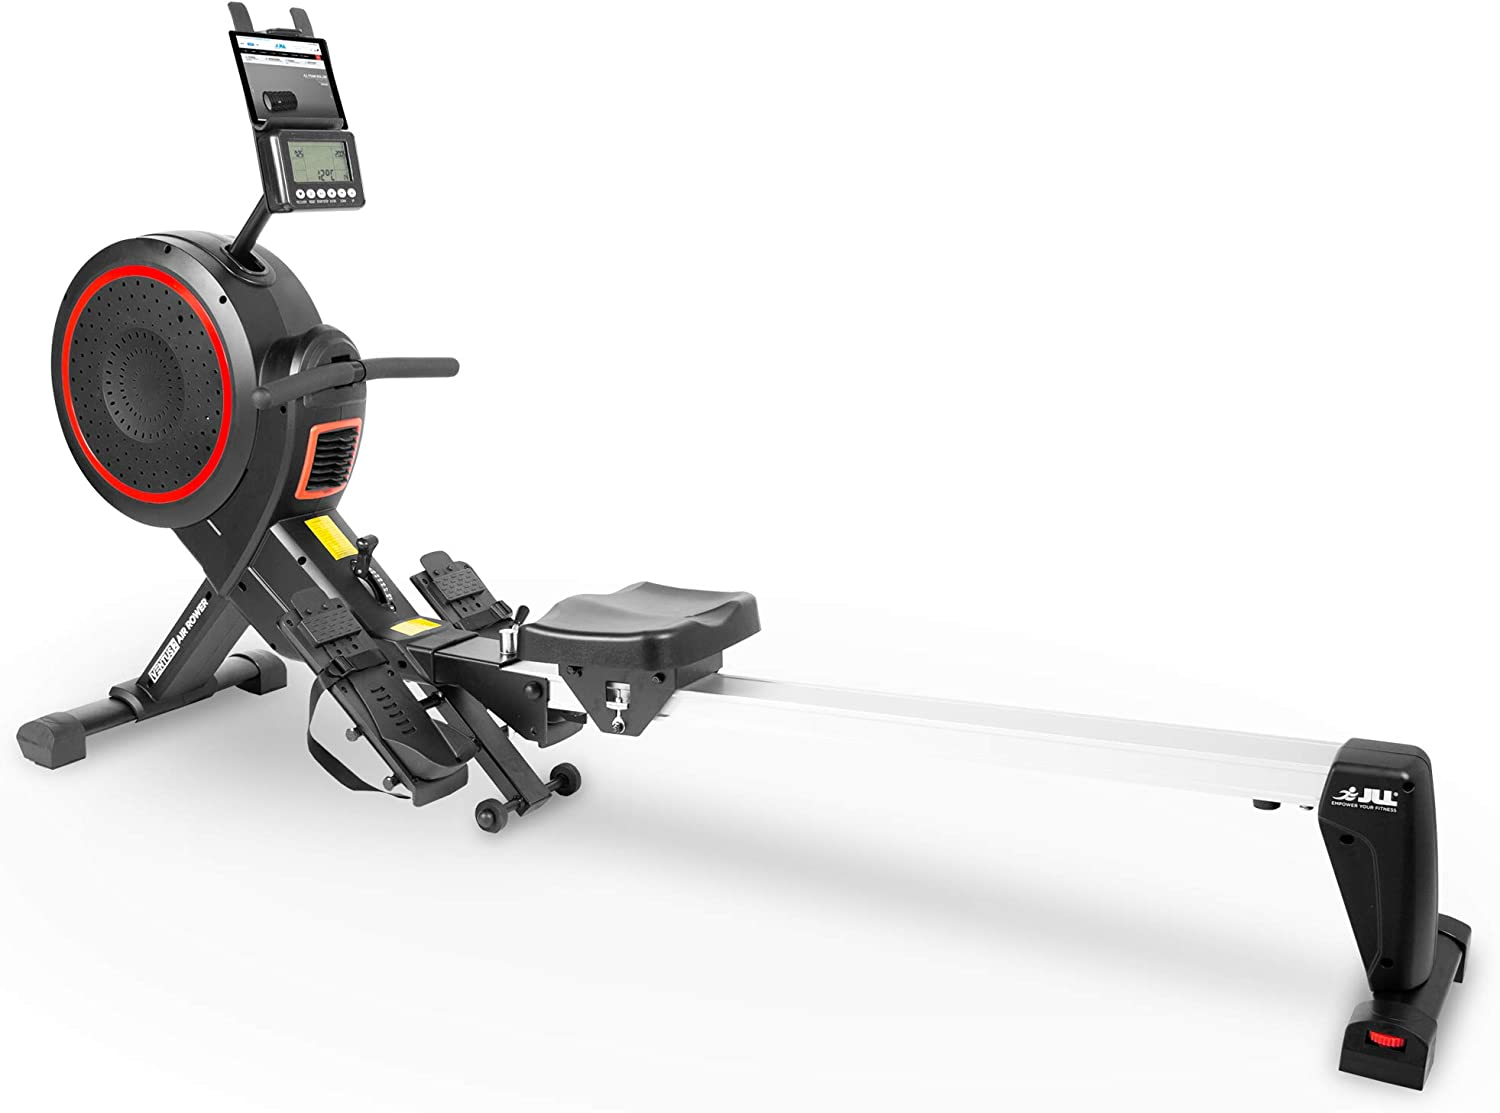 JLL Ventus 2 Air Resistance Home Rowing Machine - Full view Image